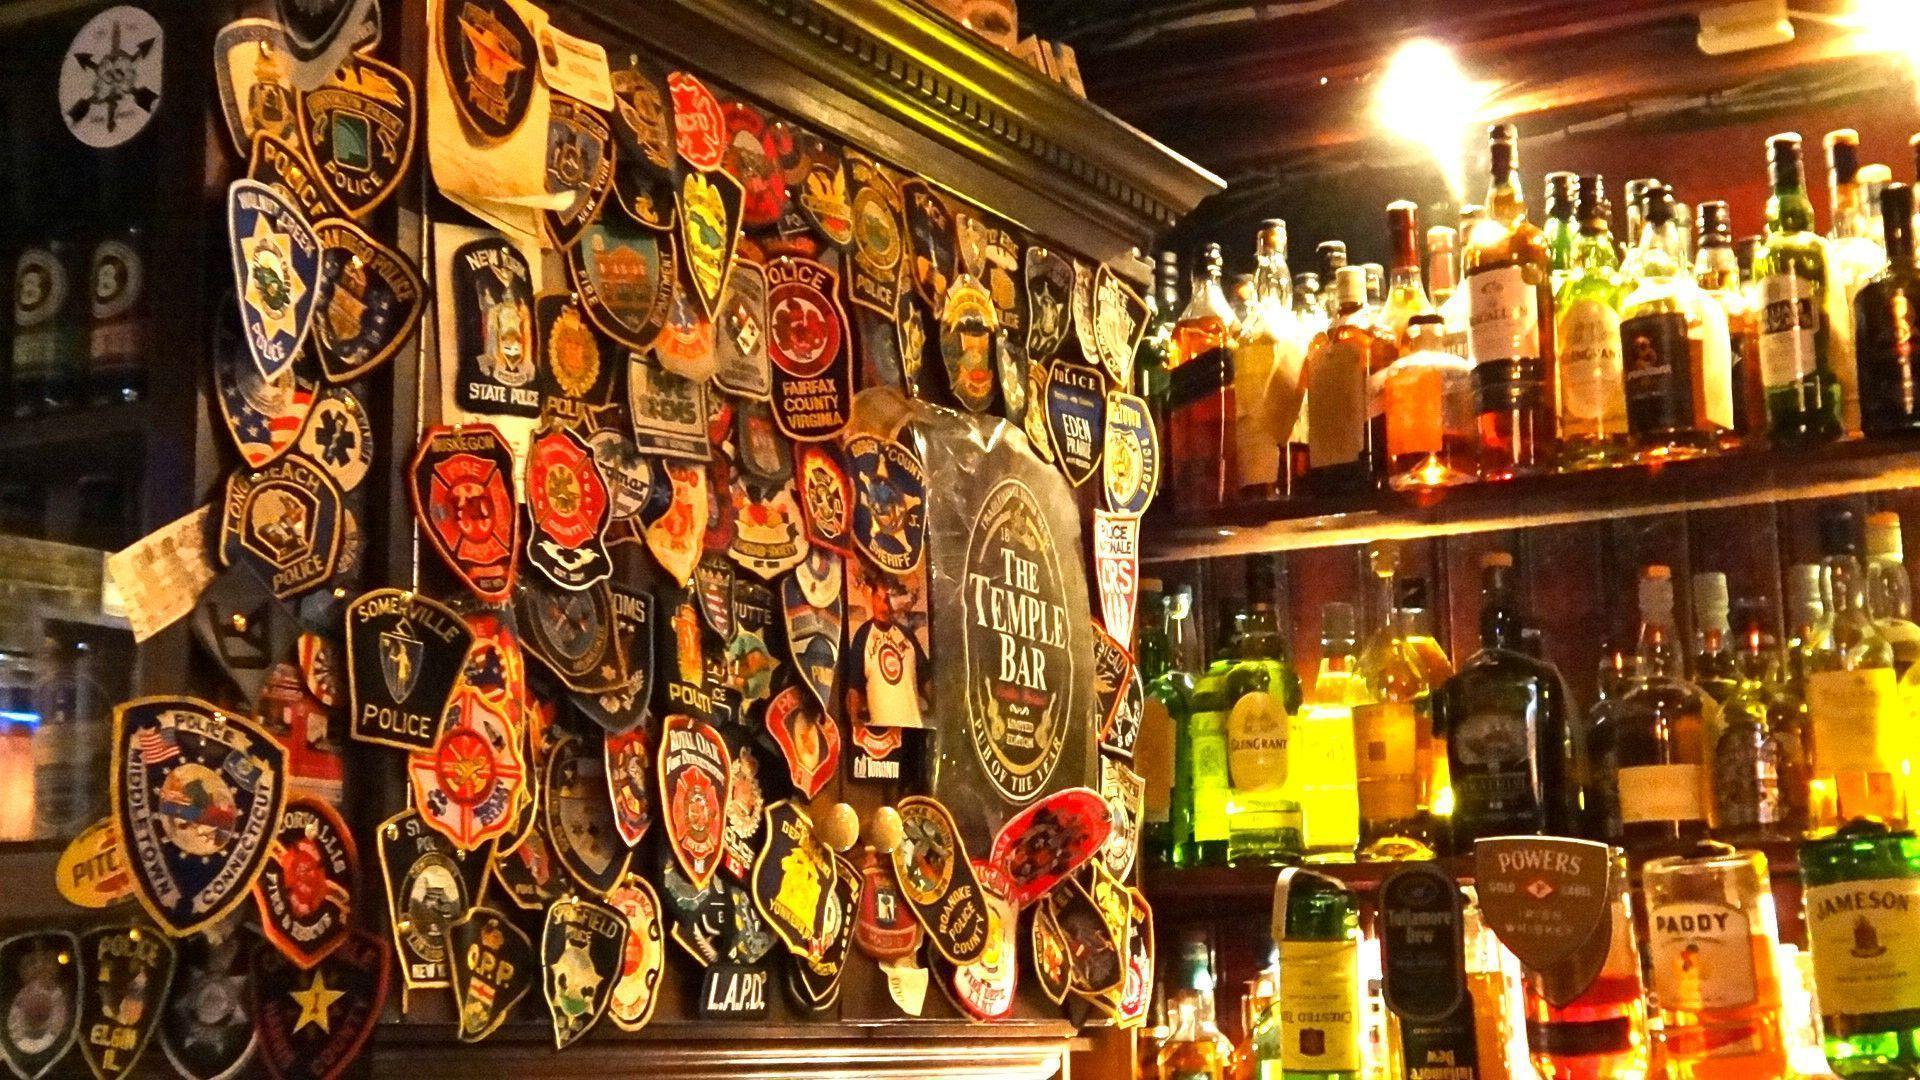 Pub Wallpapers Wallpaper Cave HD Wallpapers Download Free Images Wallpaper [1000image.com]